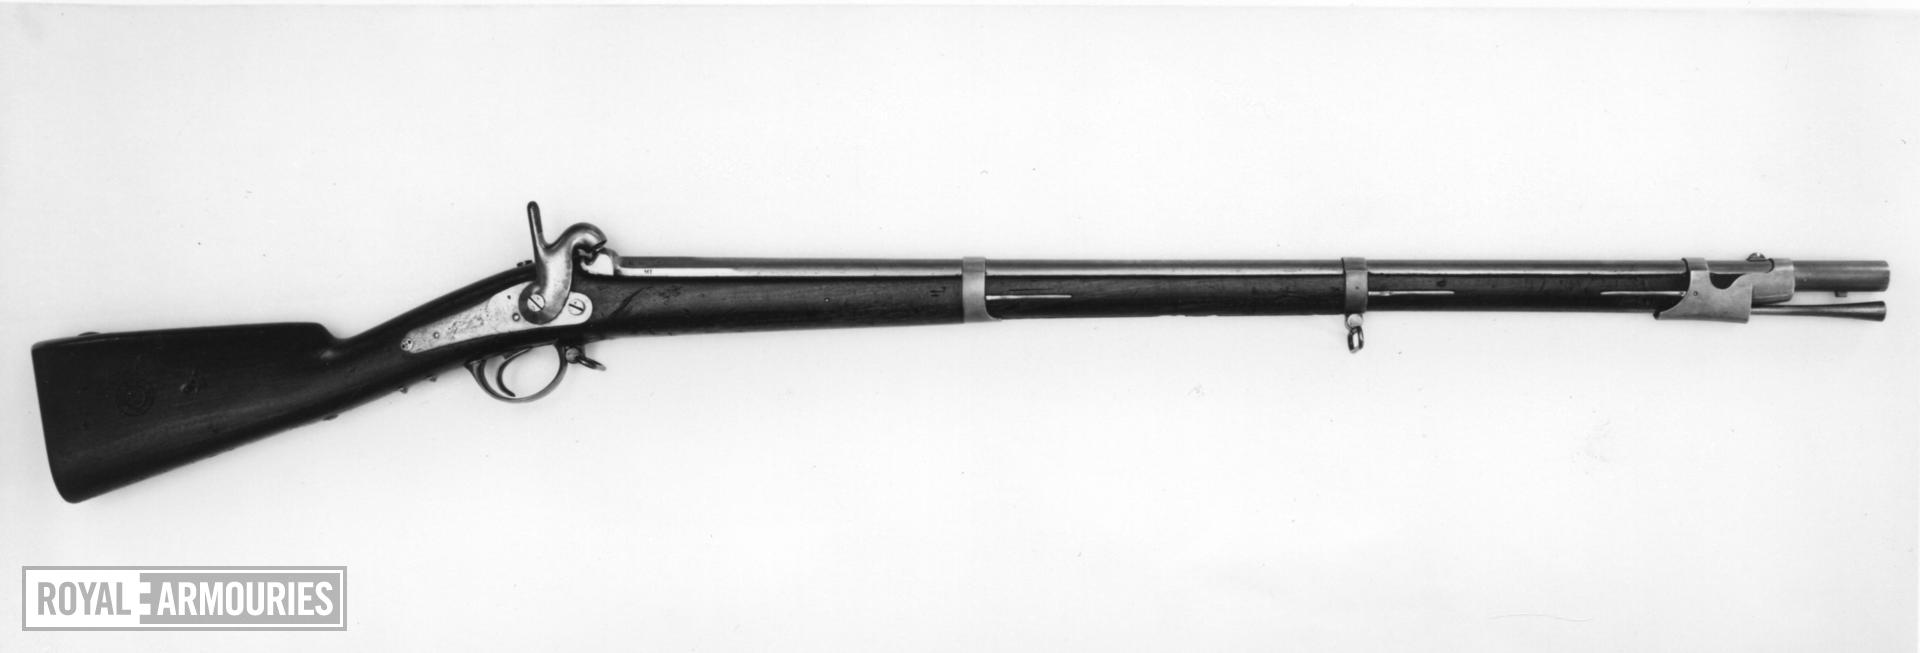 Percussion muzzle-loading military musket - Model 1853 Dragoon